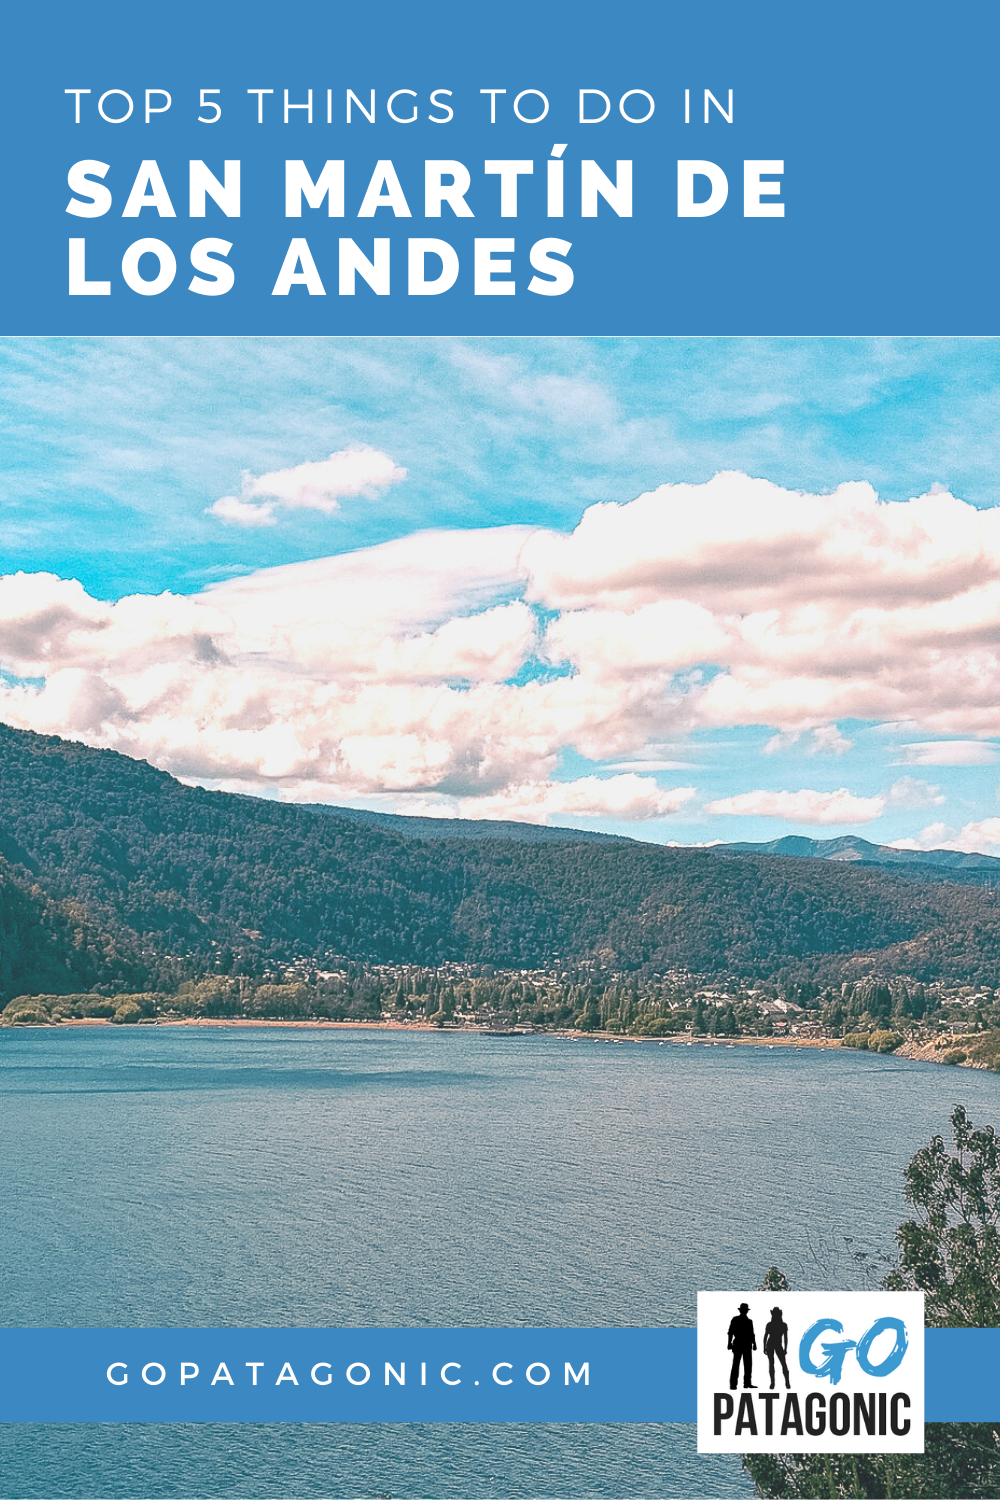 Things to do in San Martín de los Andes, top 5 must-see